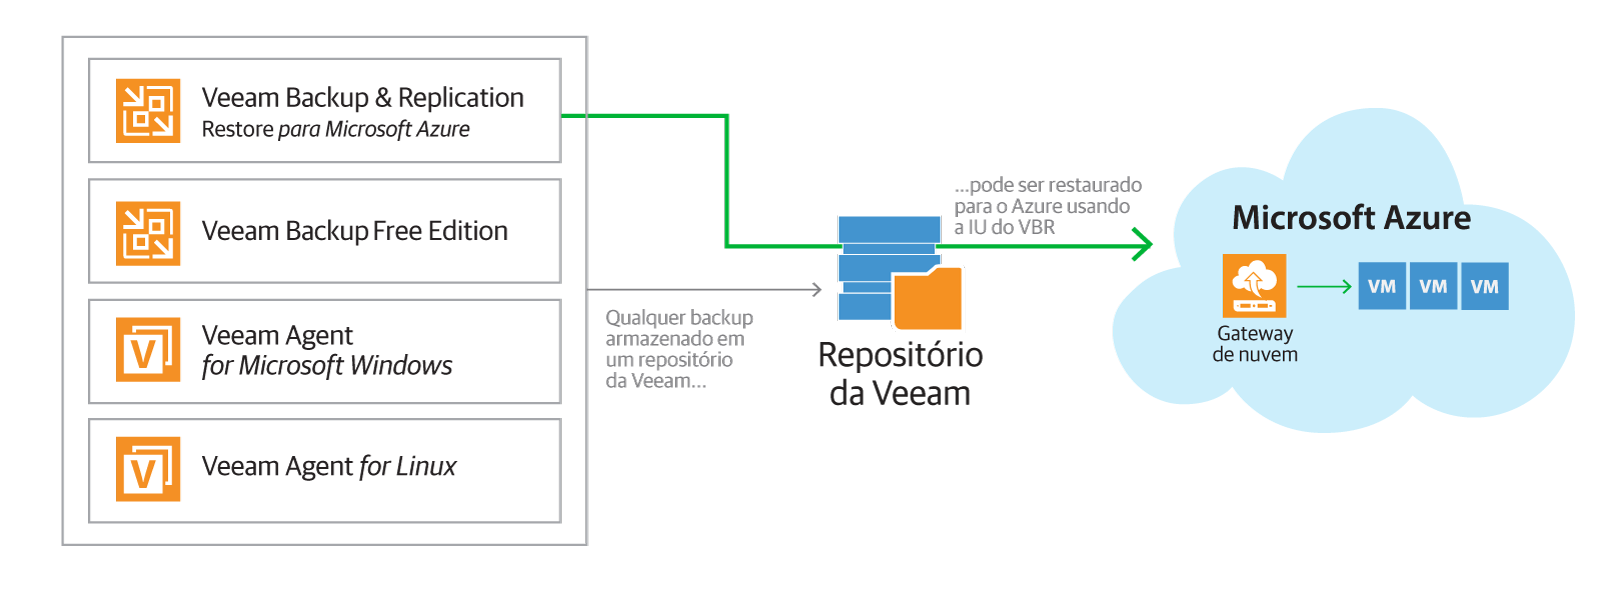 direct_restore_to_microsoft_azure_br.png